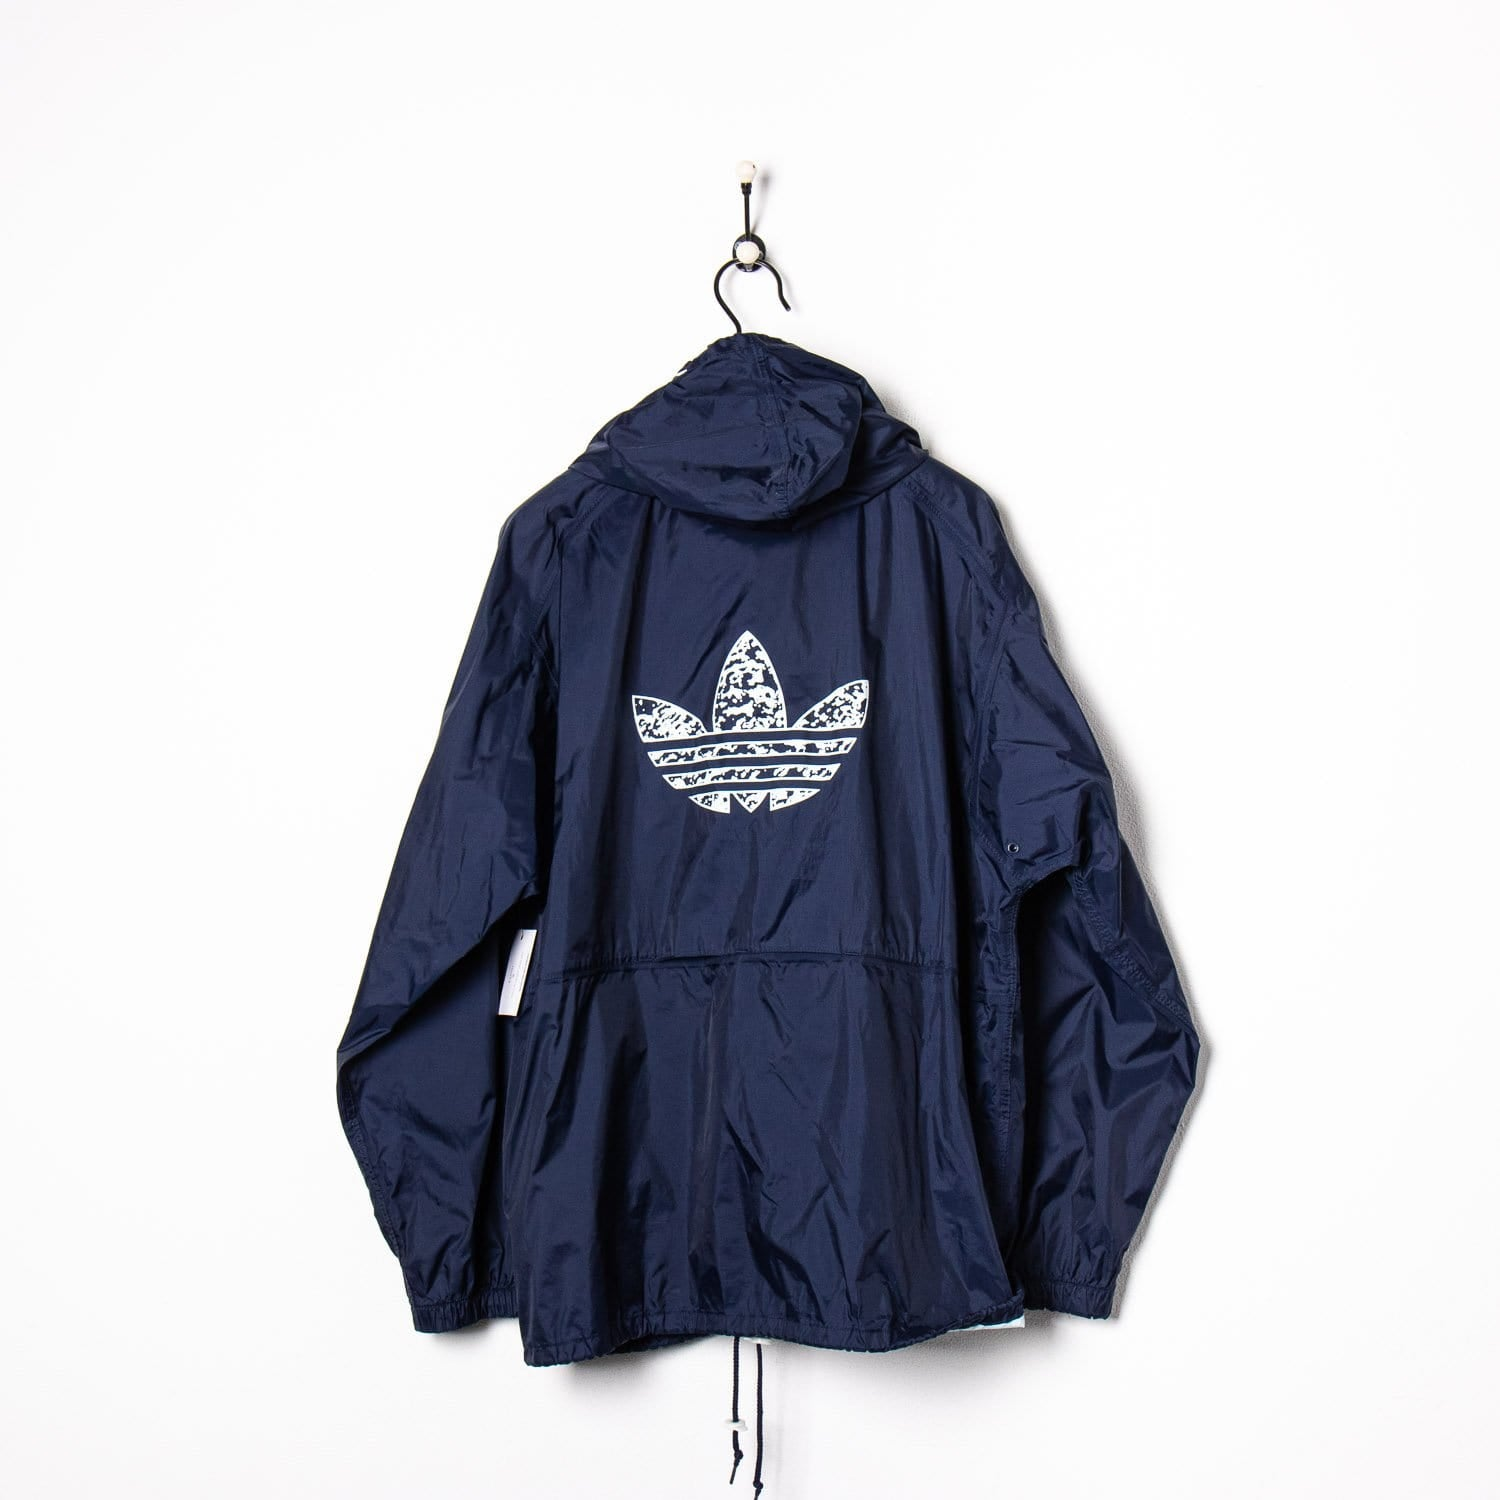 Fila Track Jacket Black/Blue/White XL